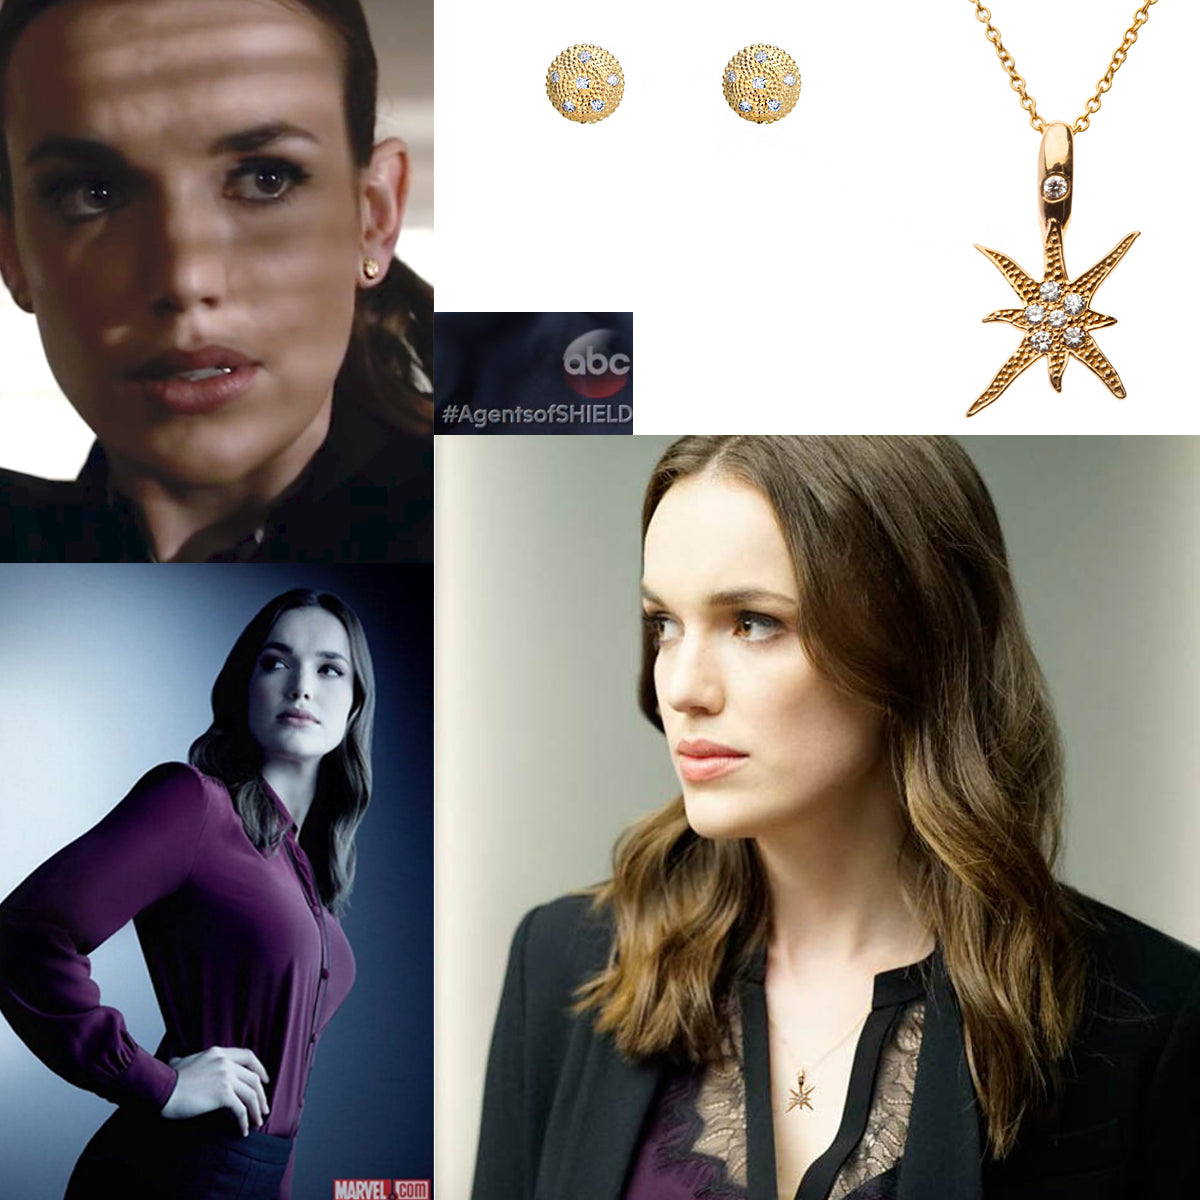 Actor Elizabeth Henstridge has a Stunt Double, AND a Stud Double Designed by Katrina Kelly Jewelry